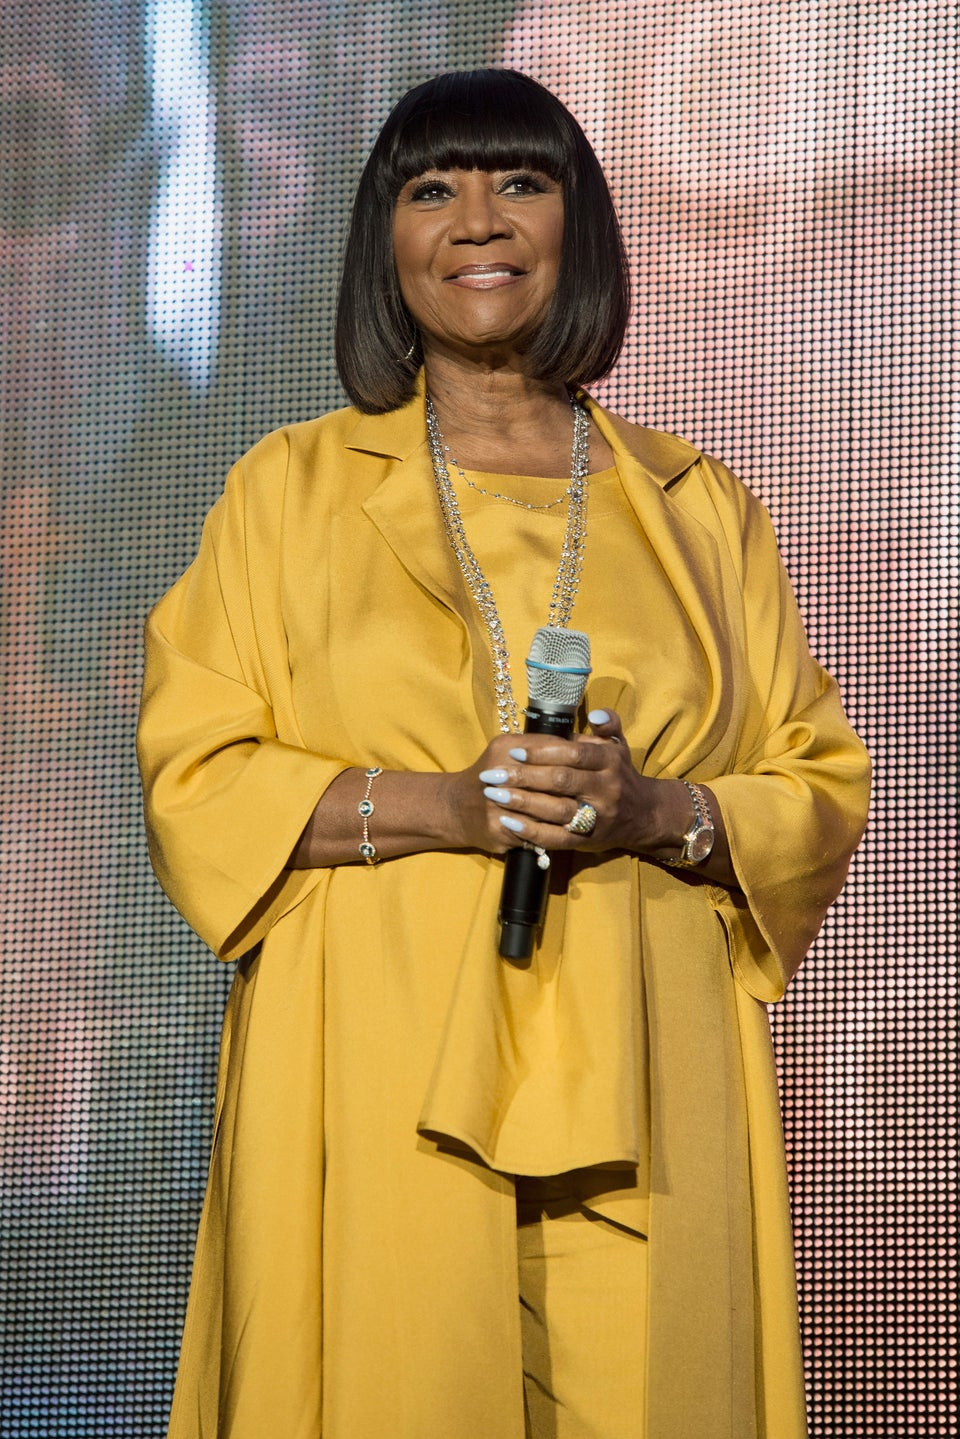 Patti LaBelle Has 'Got A New Attitude' With Fresh Album Of Jazz Covers